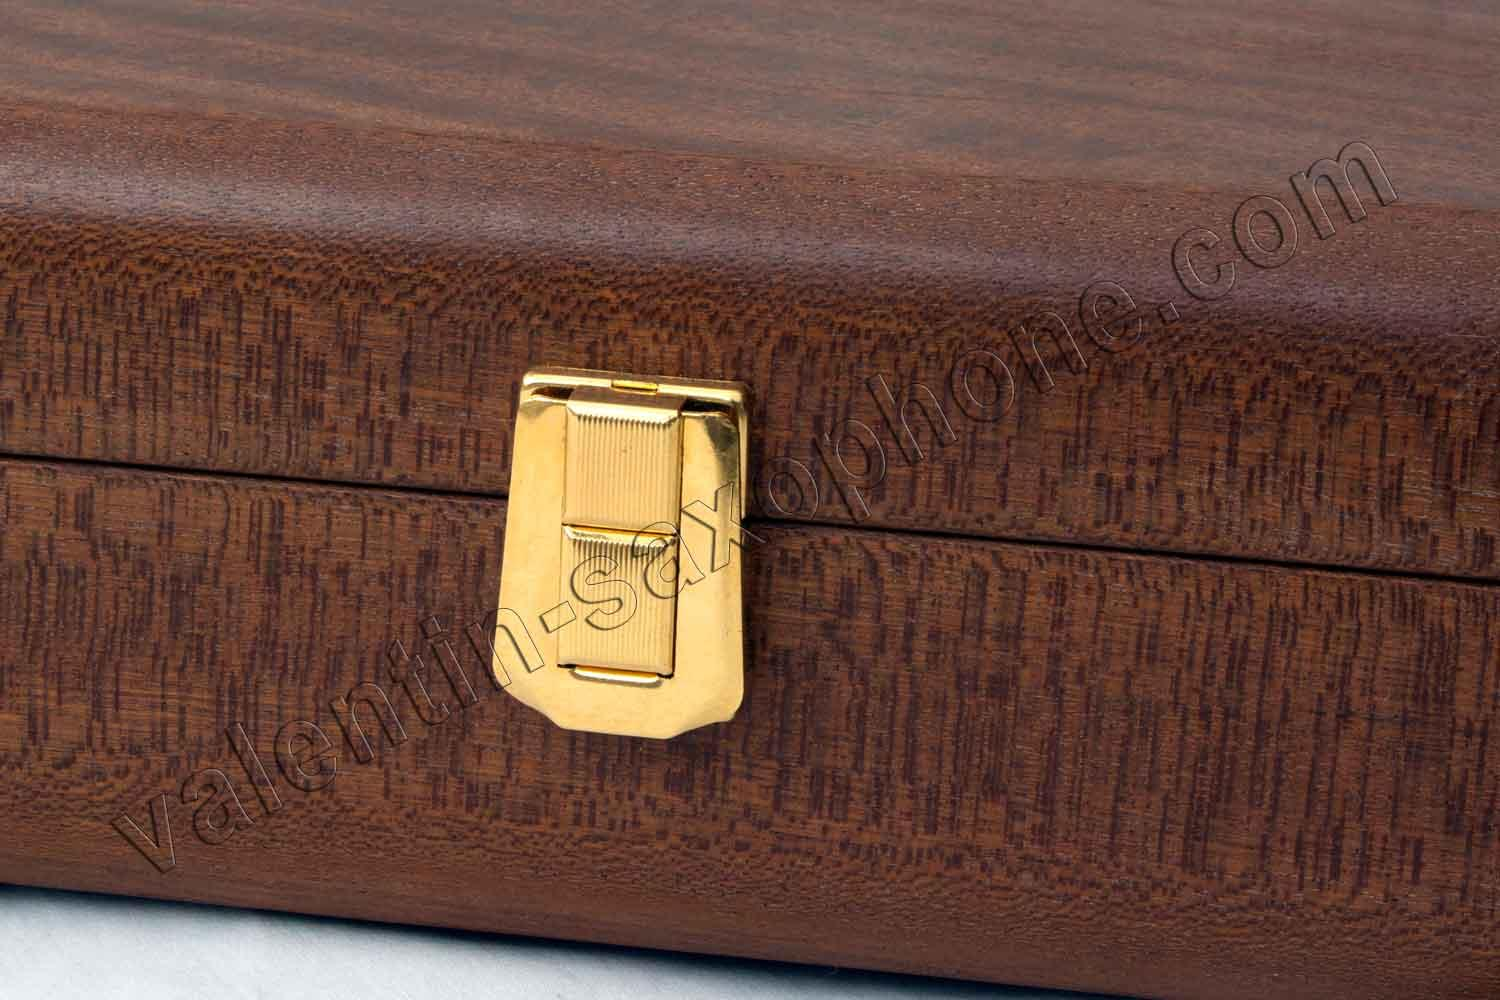 Valentin cases : Here a Deluxe soprano clarinet mouthpieces case with a gold plated latch.